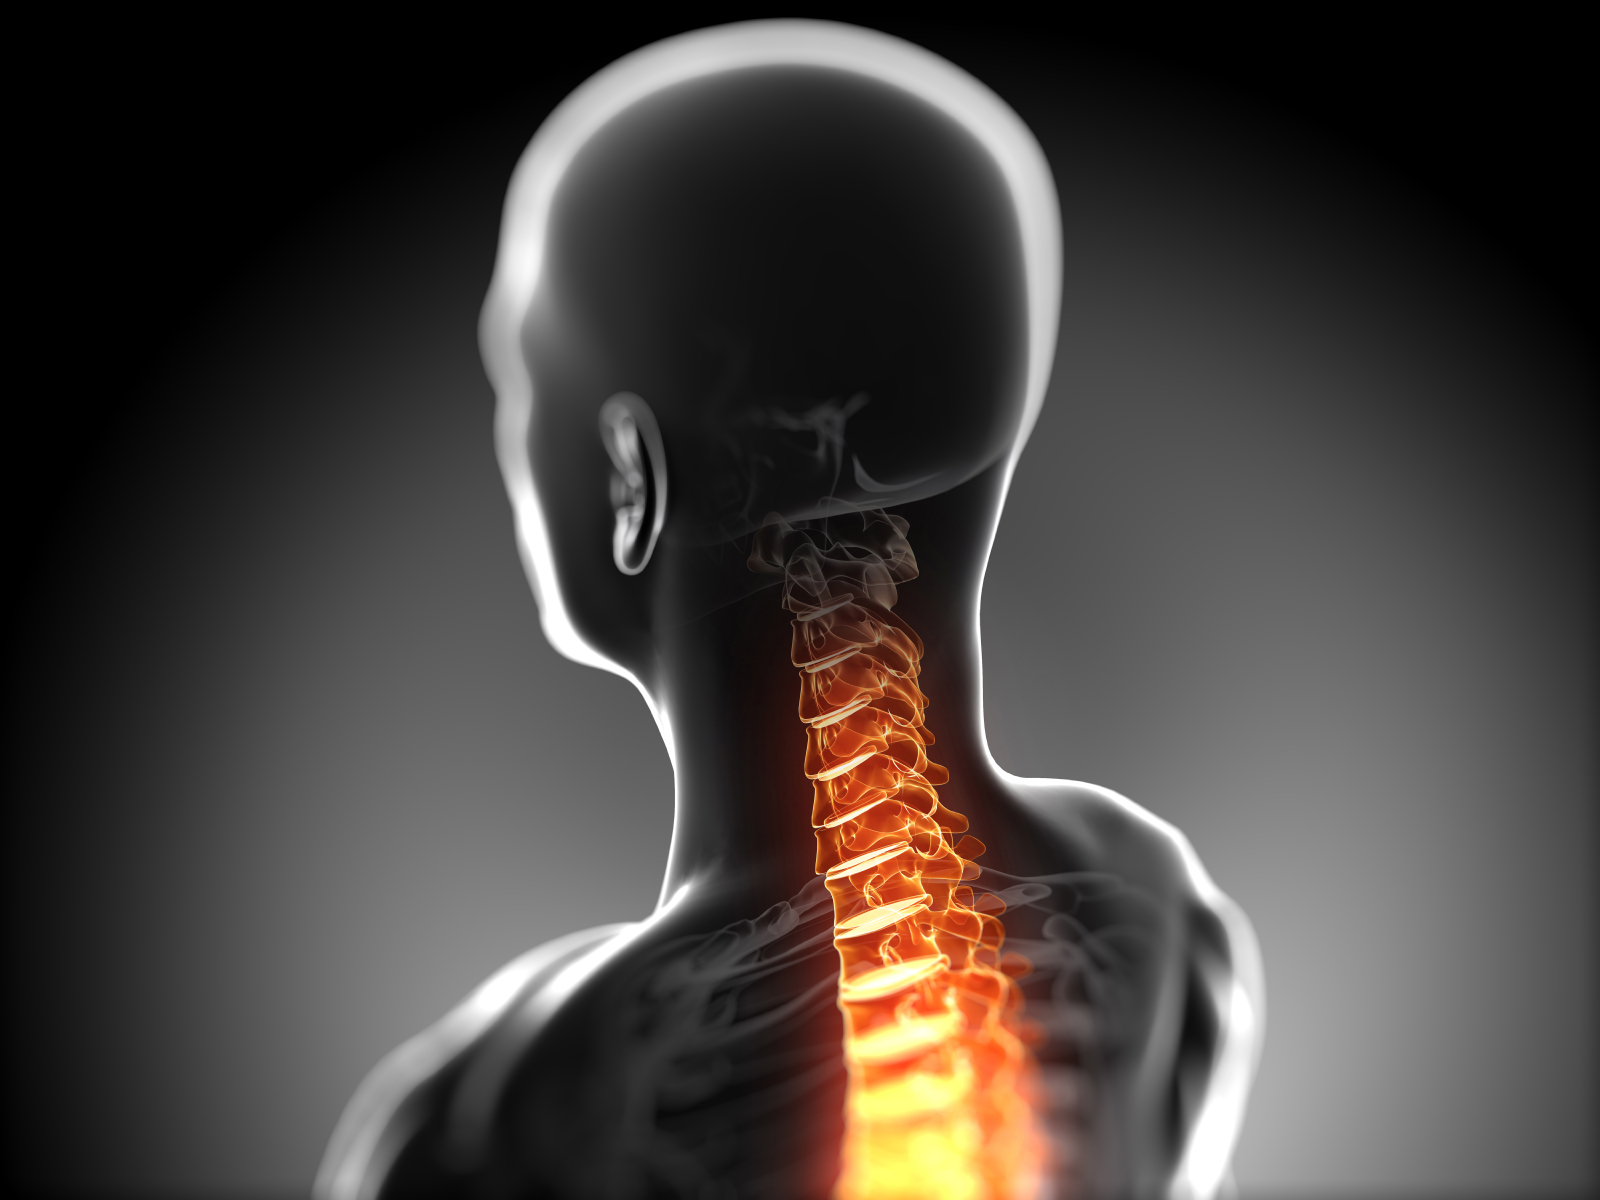 3d rendered anatomy illustration - painful back